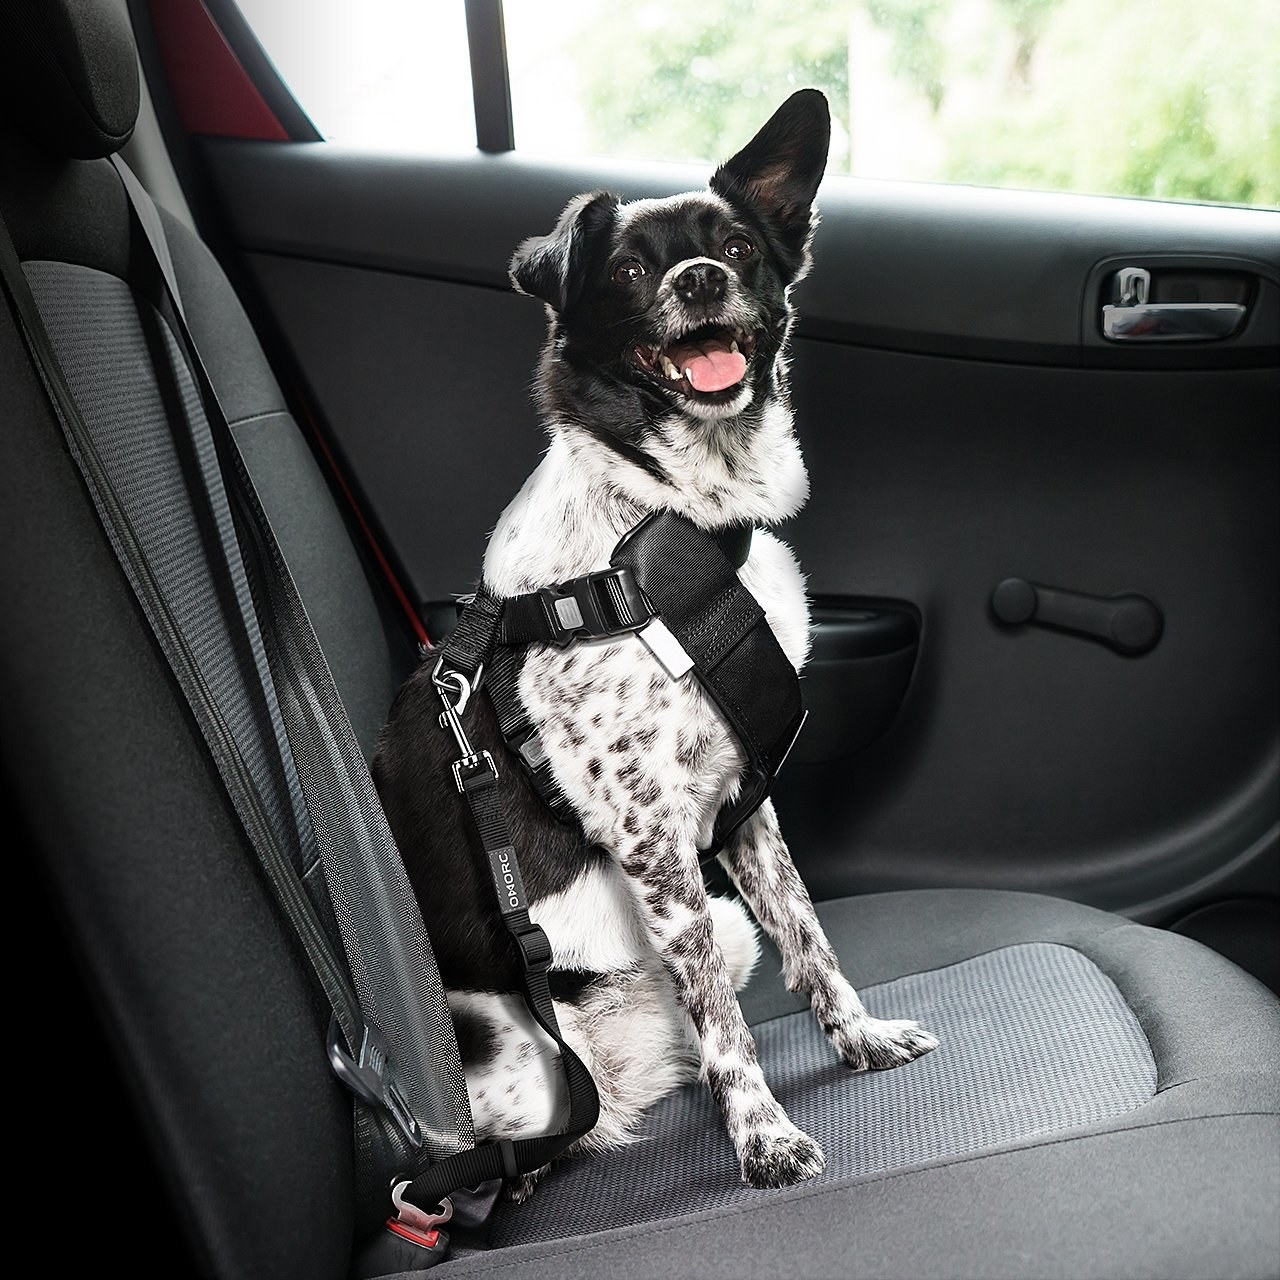 A dog strapped into the backseat of a car with the dog seat belt